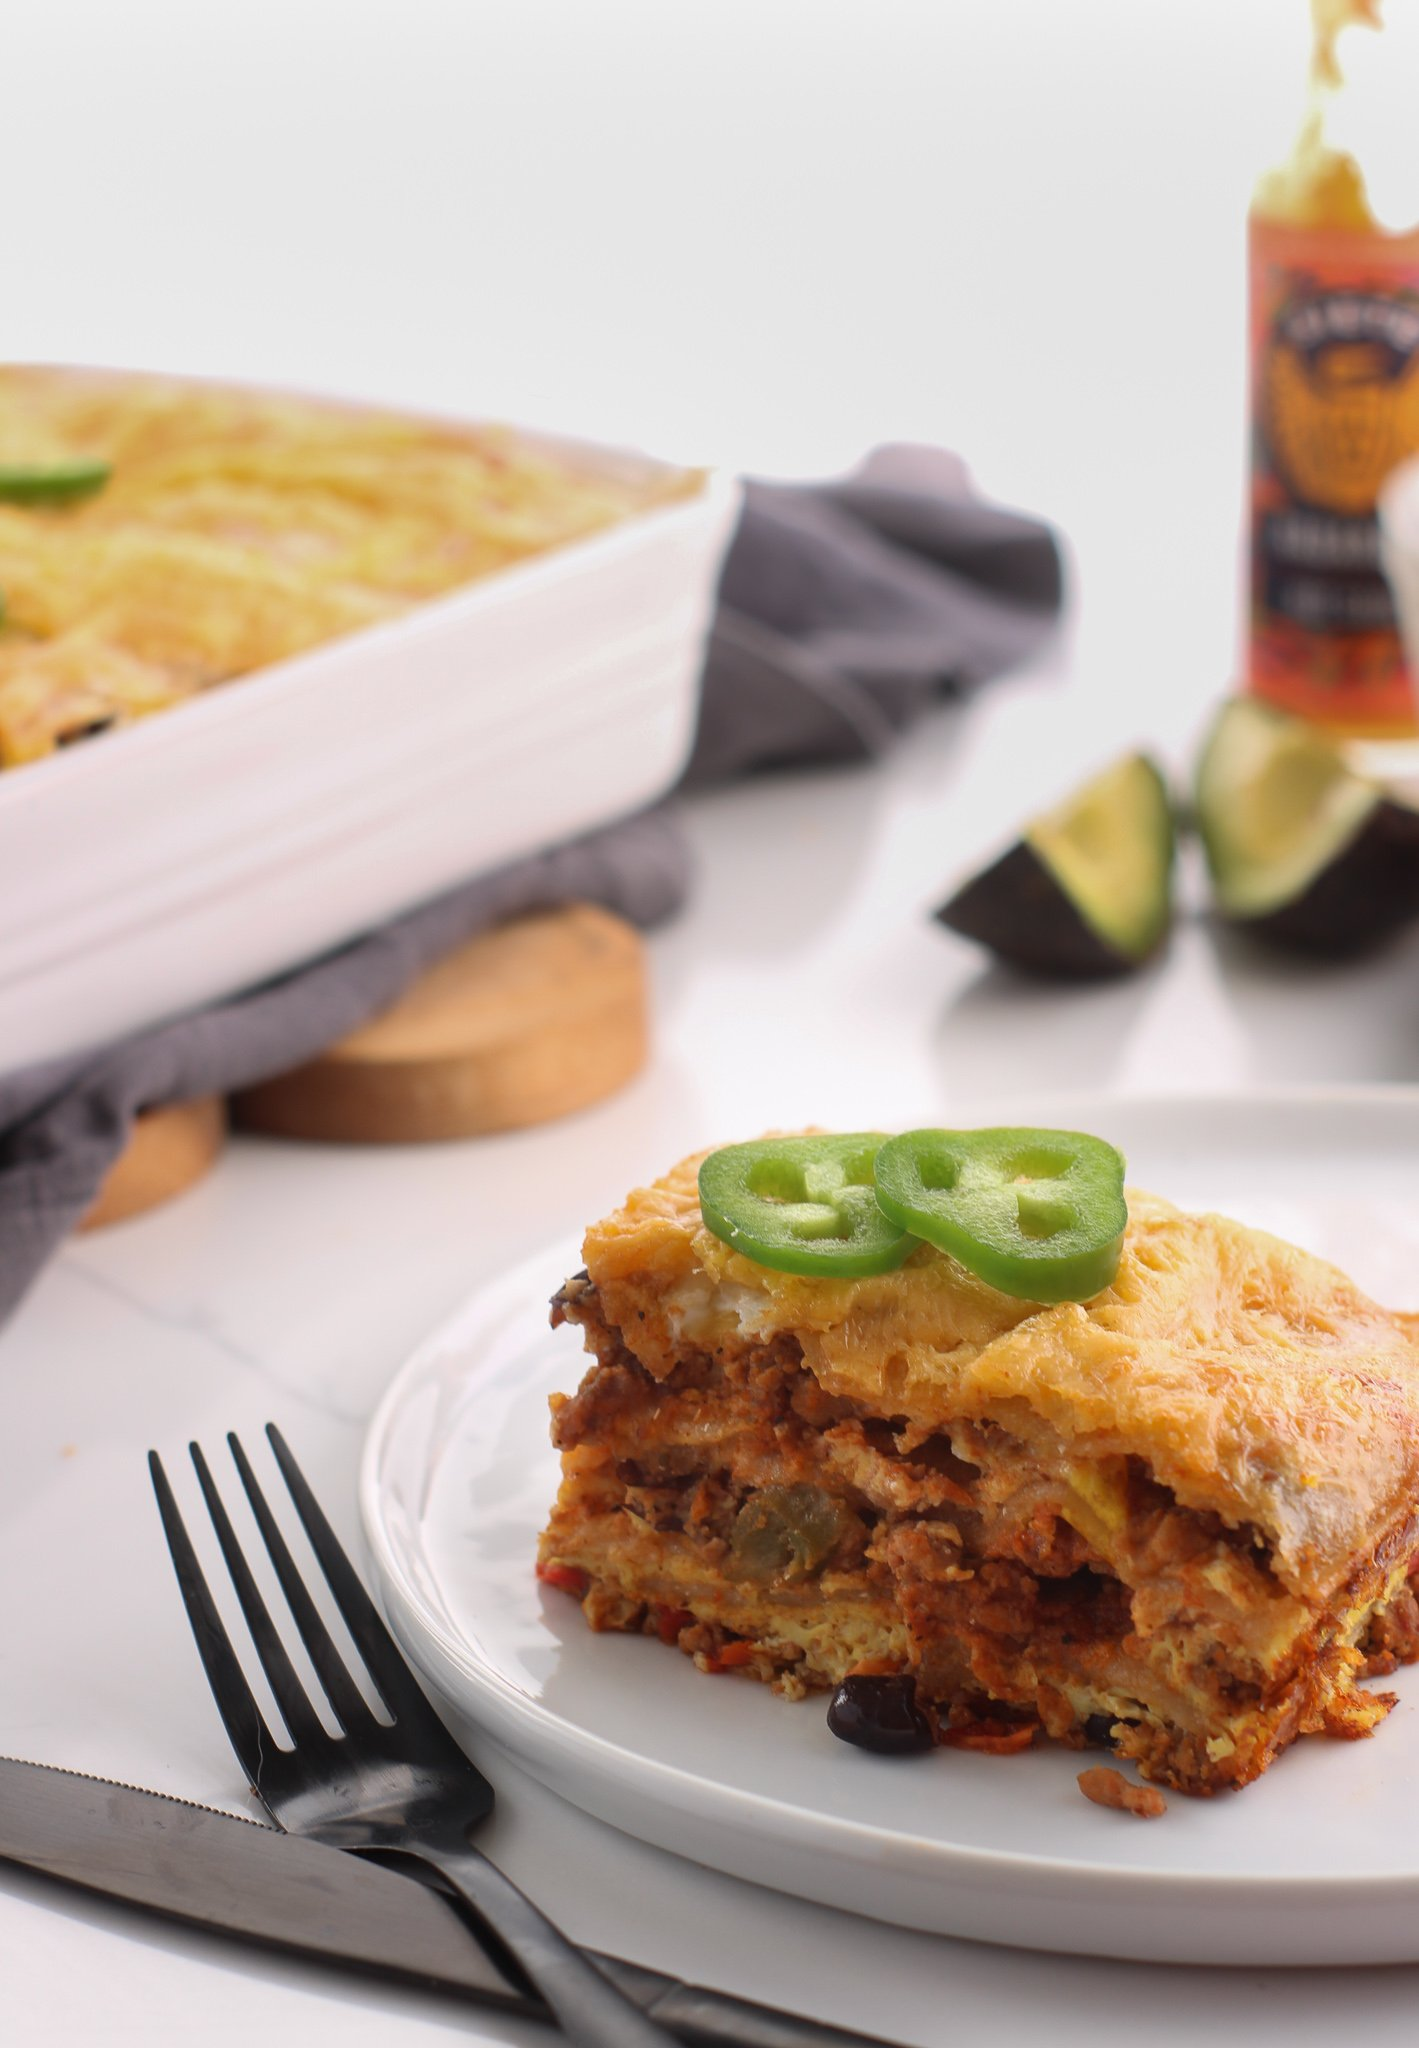 Slice of mexican breakfast casserole pulled out of the dish and onto a white plate with a few fresh jalapeno slices on top. There is some sliced avocado and hot sauce off to the side to add if wanted.